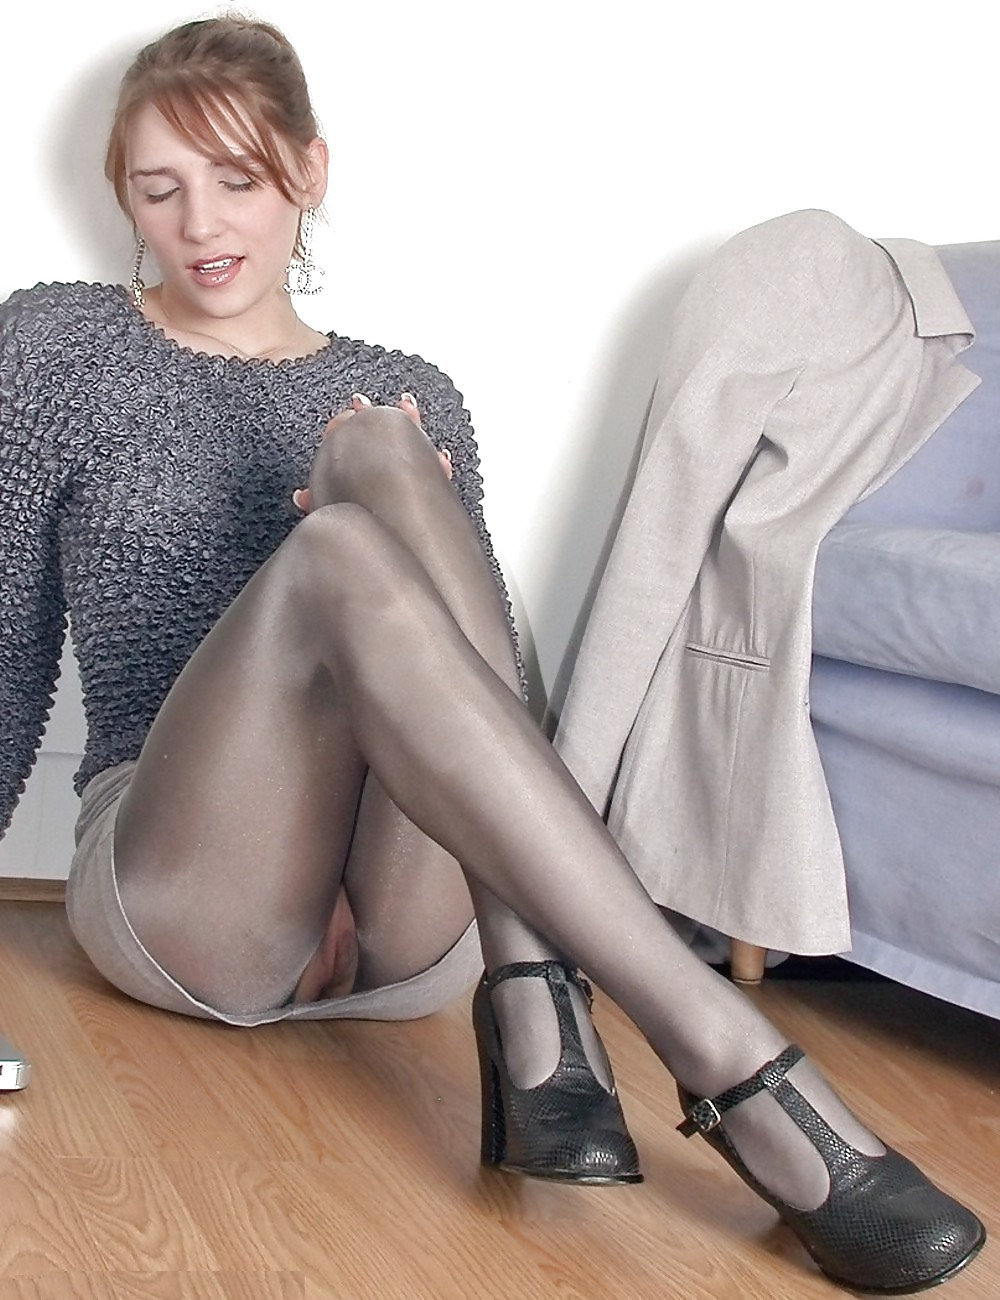 pictures Pantyhose upskirt